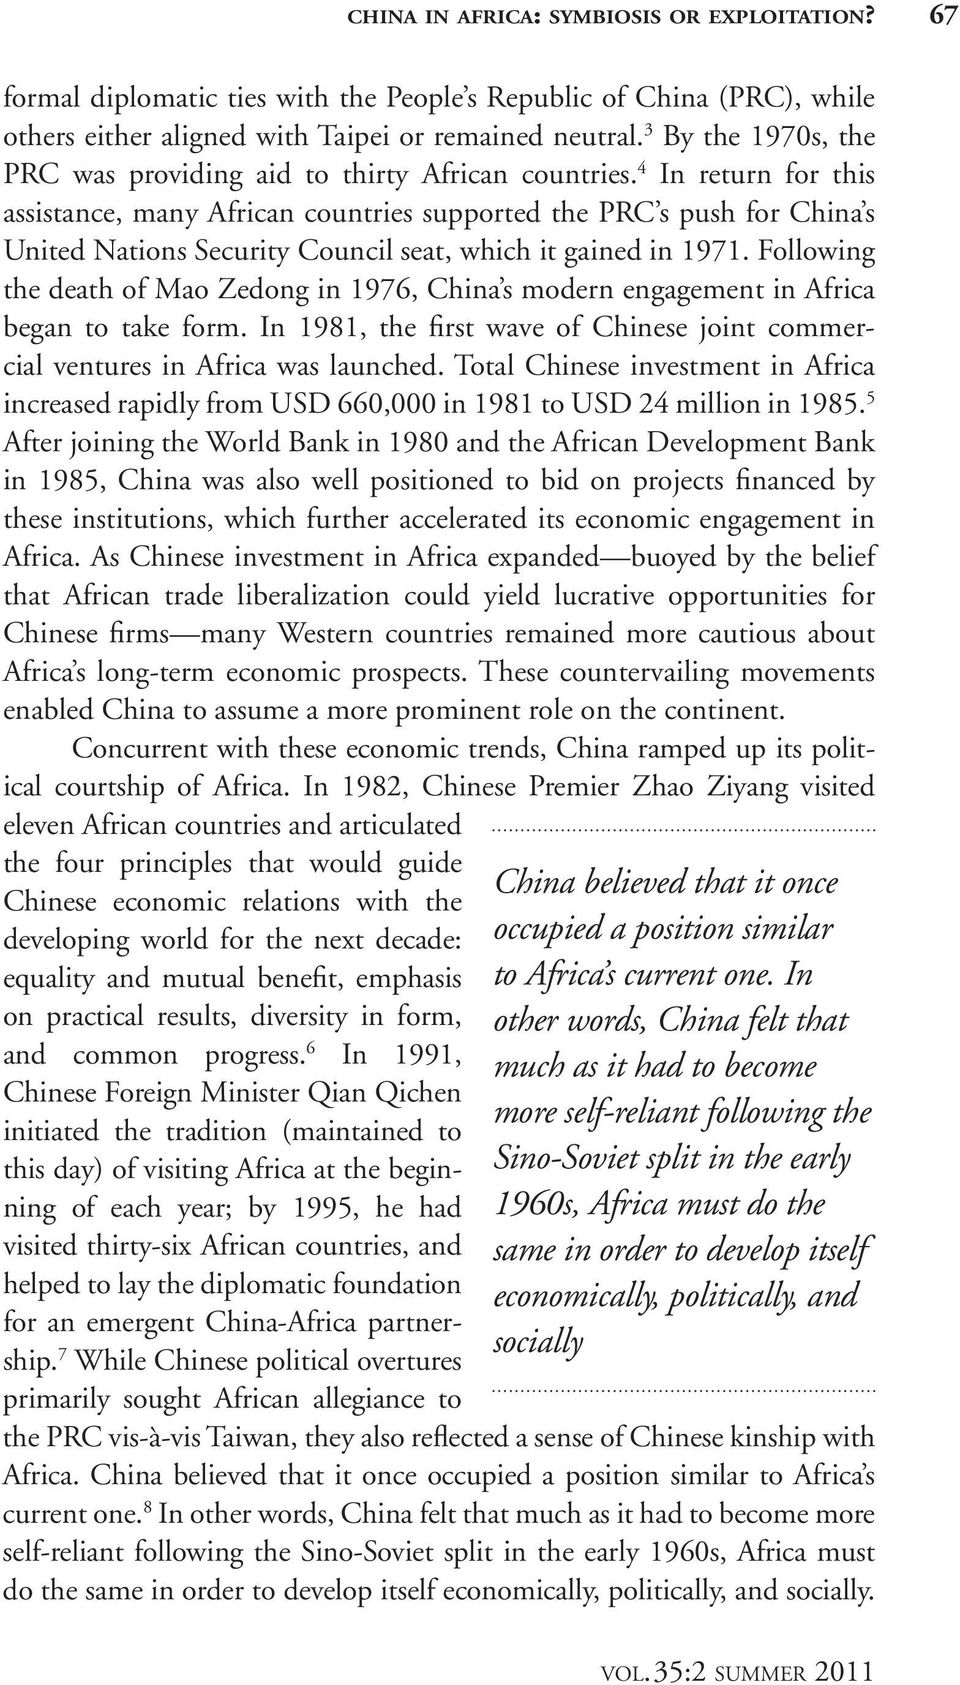 4 In return for this assistance, many African countries supported the PRC s push for China s United Nations Security Council seat, which it gained in 1971.